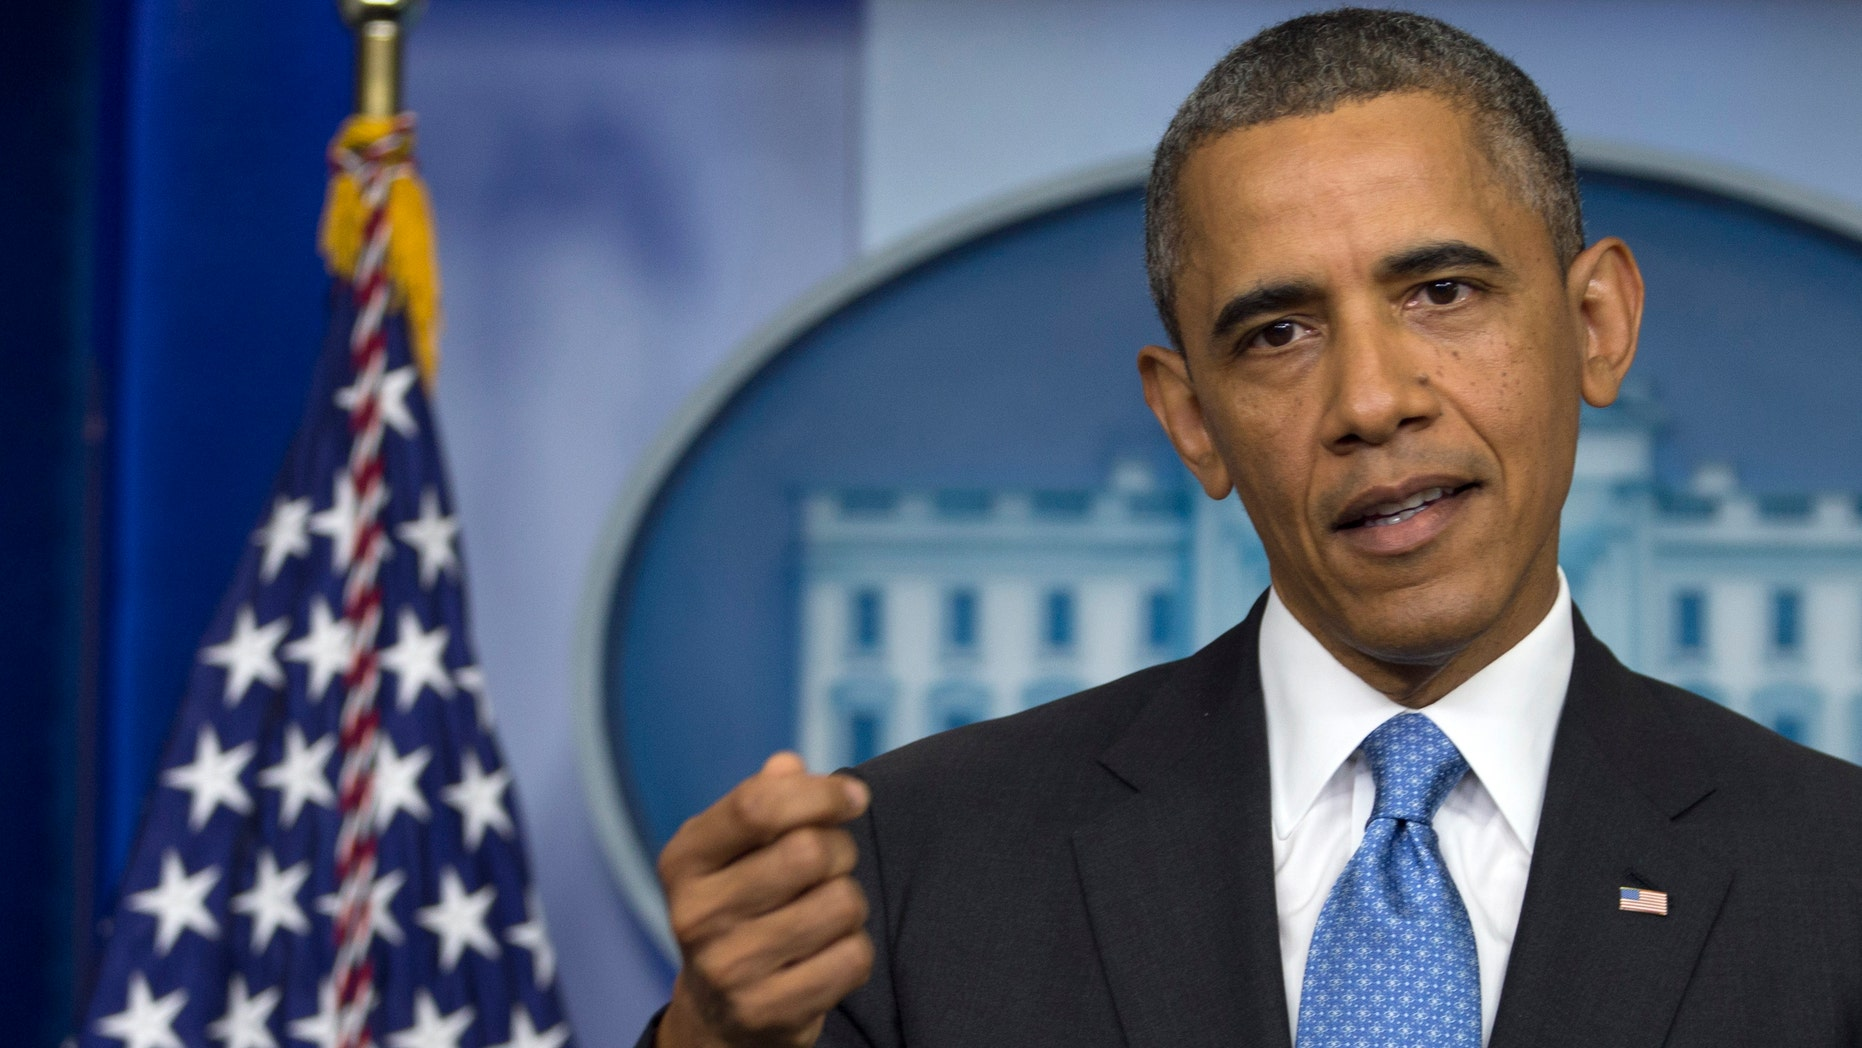 President Barack Obama gestures as he speaks during his daily news briefing at the White House, Friday, July 19, 2013, in Washington, about the fatal shooting of Trayvon Martin by George Zimmerman. (AP Photo/Carolyn Kaster)